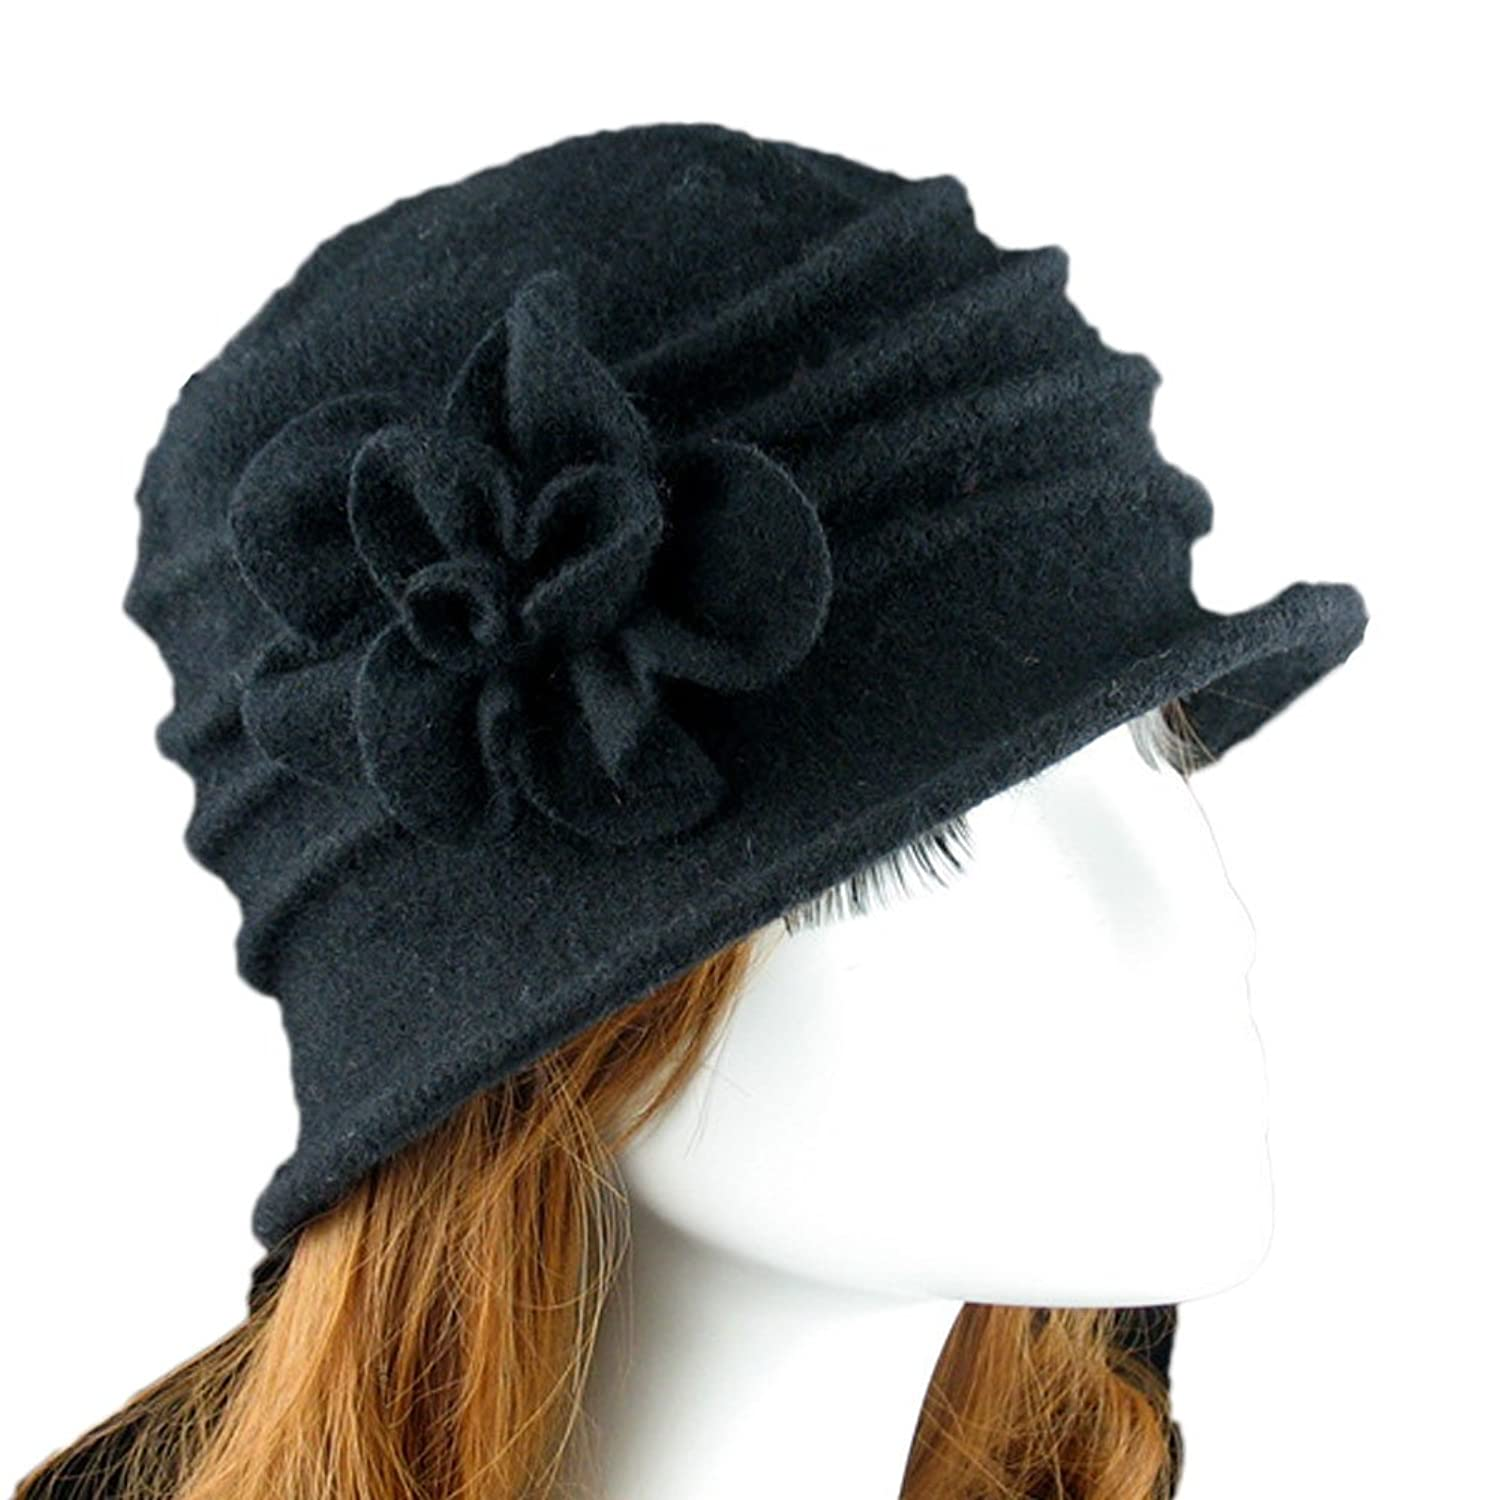 be90271025193 Ealafee Women 100% Wool Solid Color Round Top Cloche Beret Butterfly Fedora  Hats